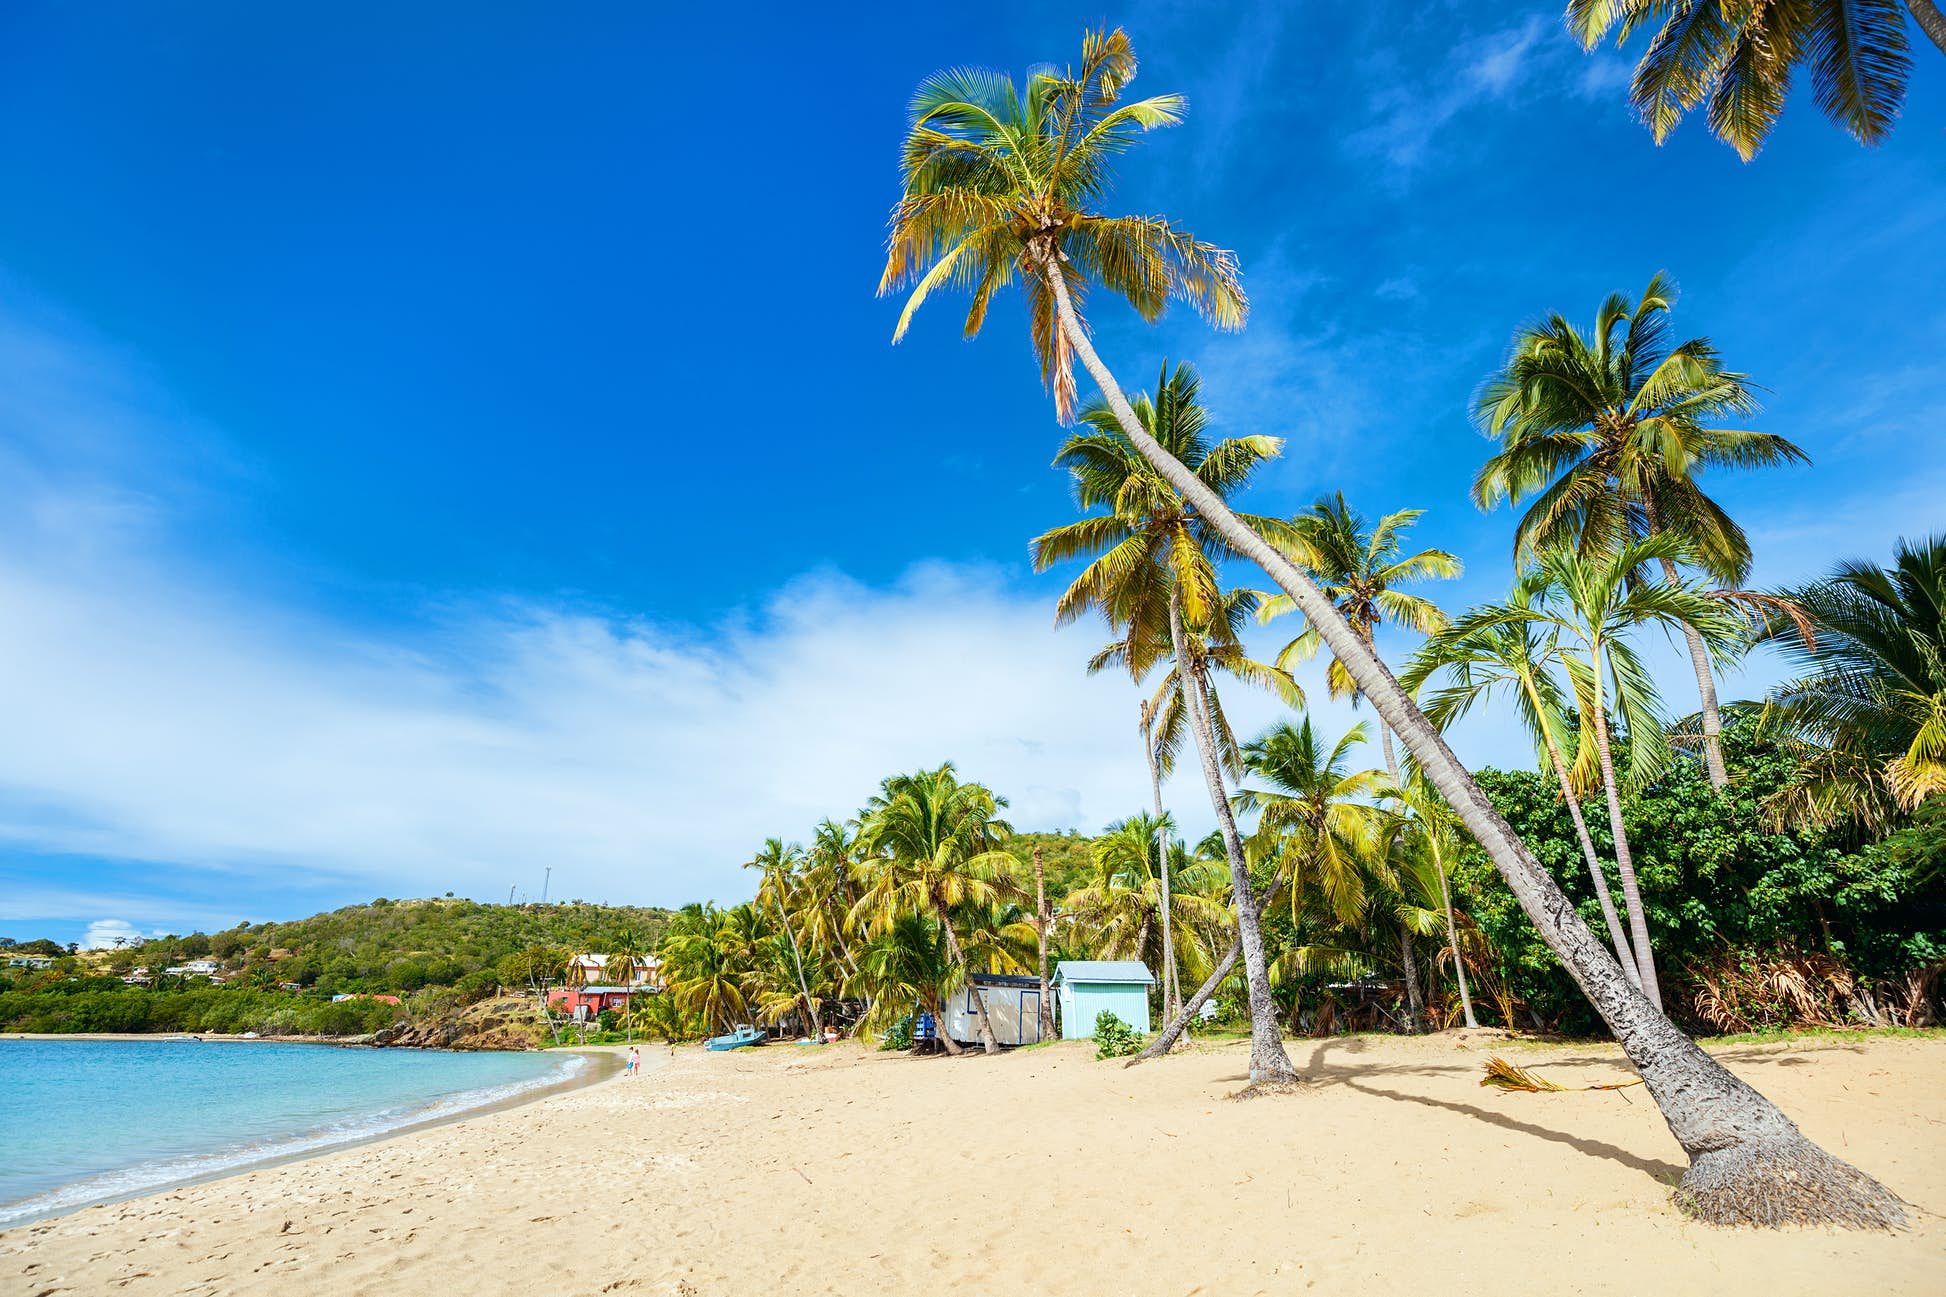 Idyllic tropical Carlisle Bay Beach with white sand, turquoise ocean water and blue sky on the island of Antigua is stunning © BlueOrange Studio / Shutterstock